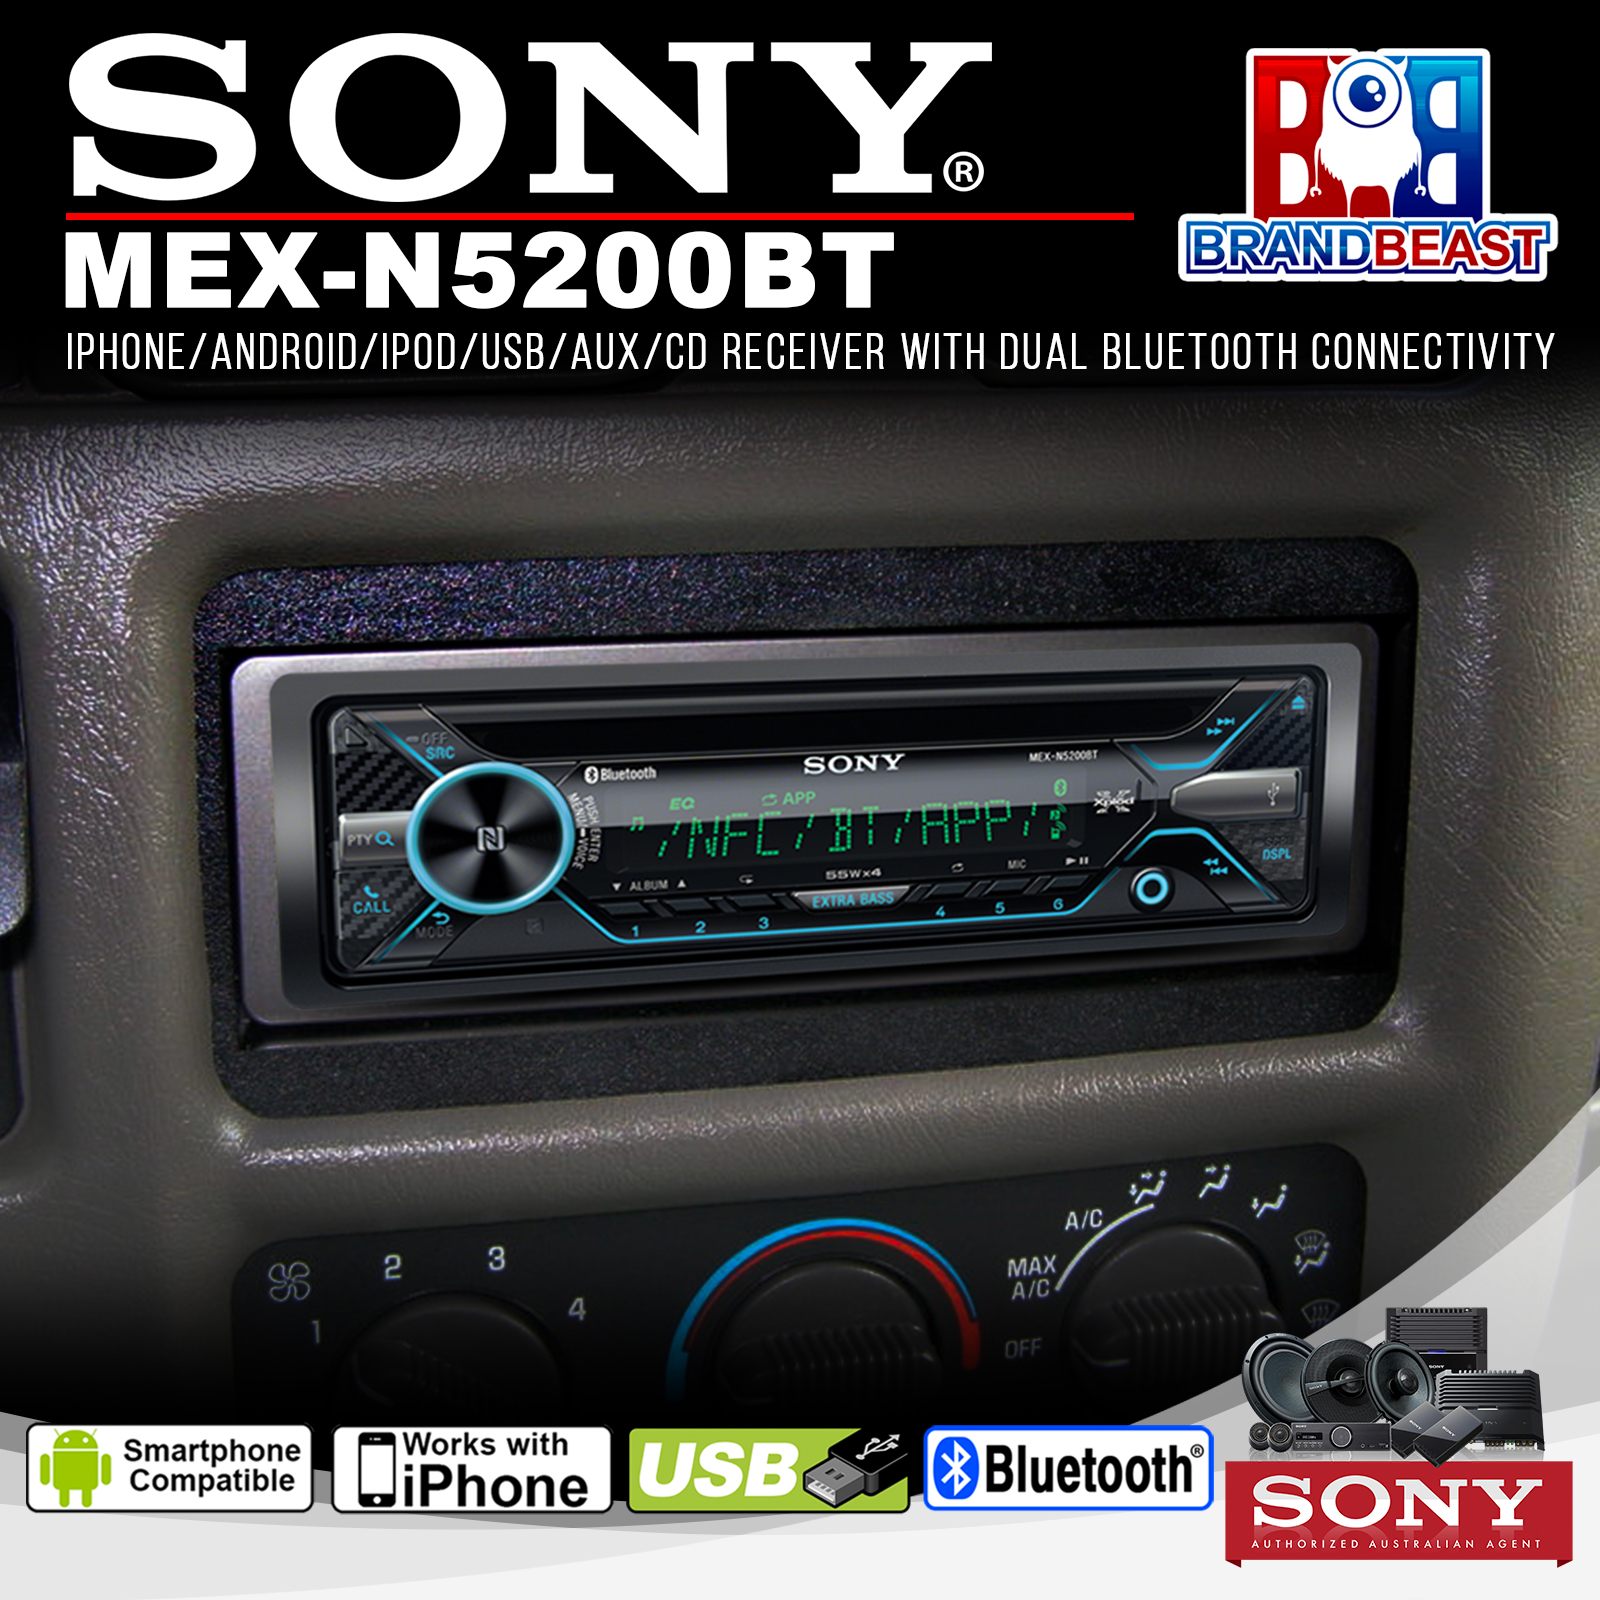 sony mex n5200bt cd player with bluetooth voice control. Black Bedroom Furniture Sets. Home Design Ideas